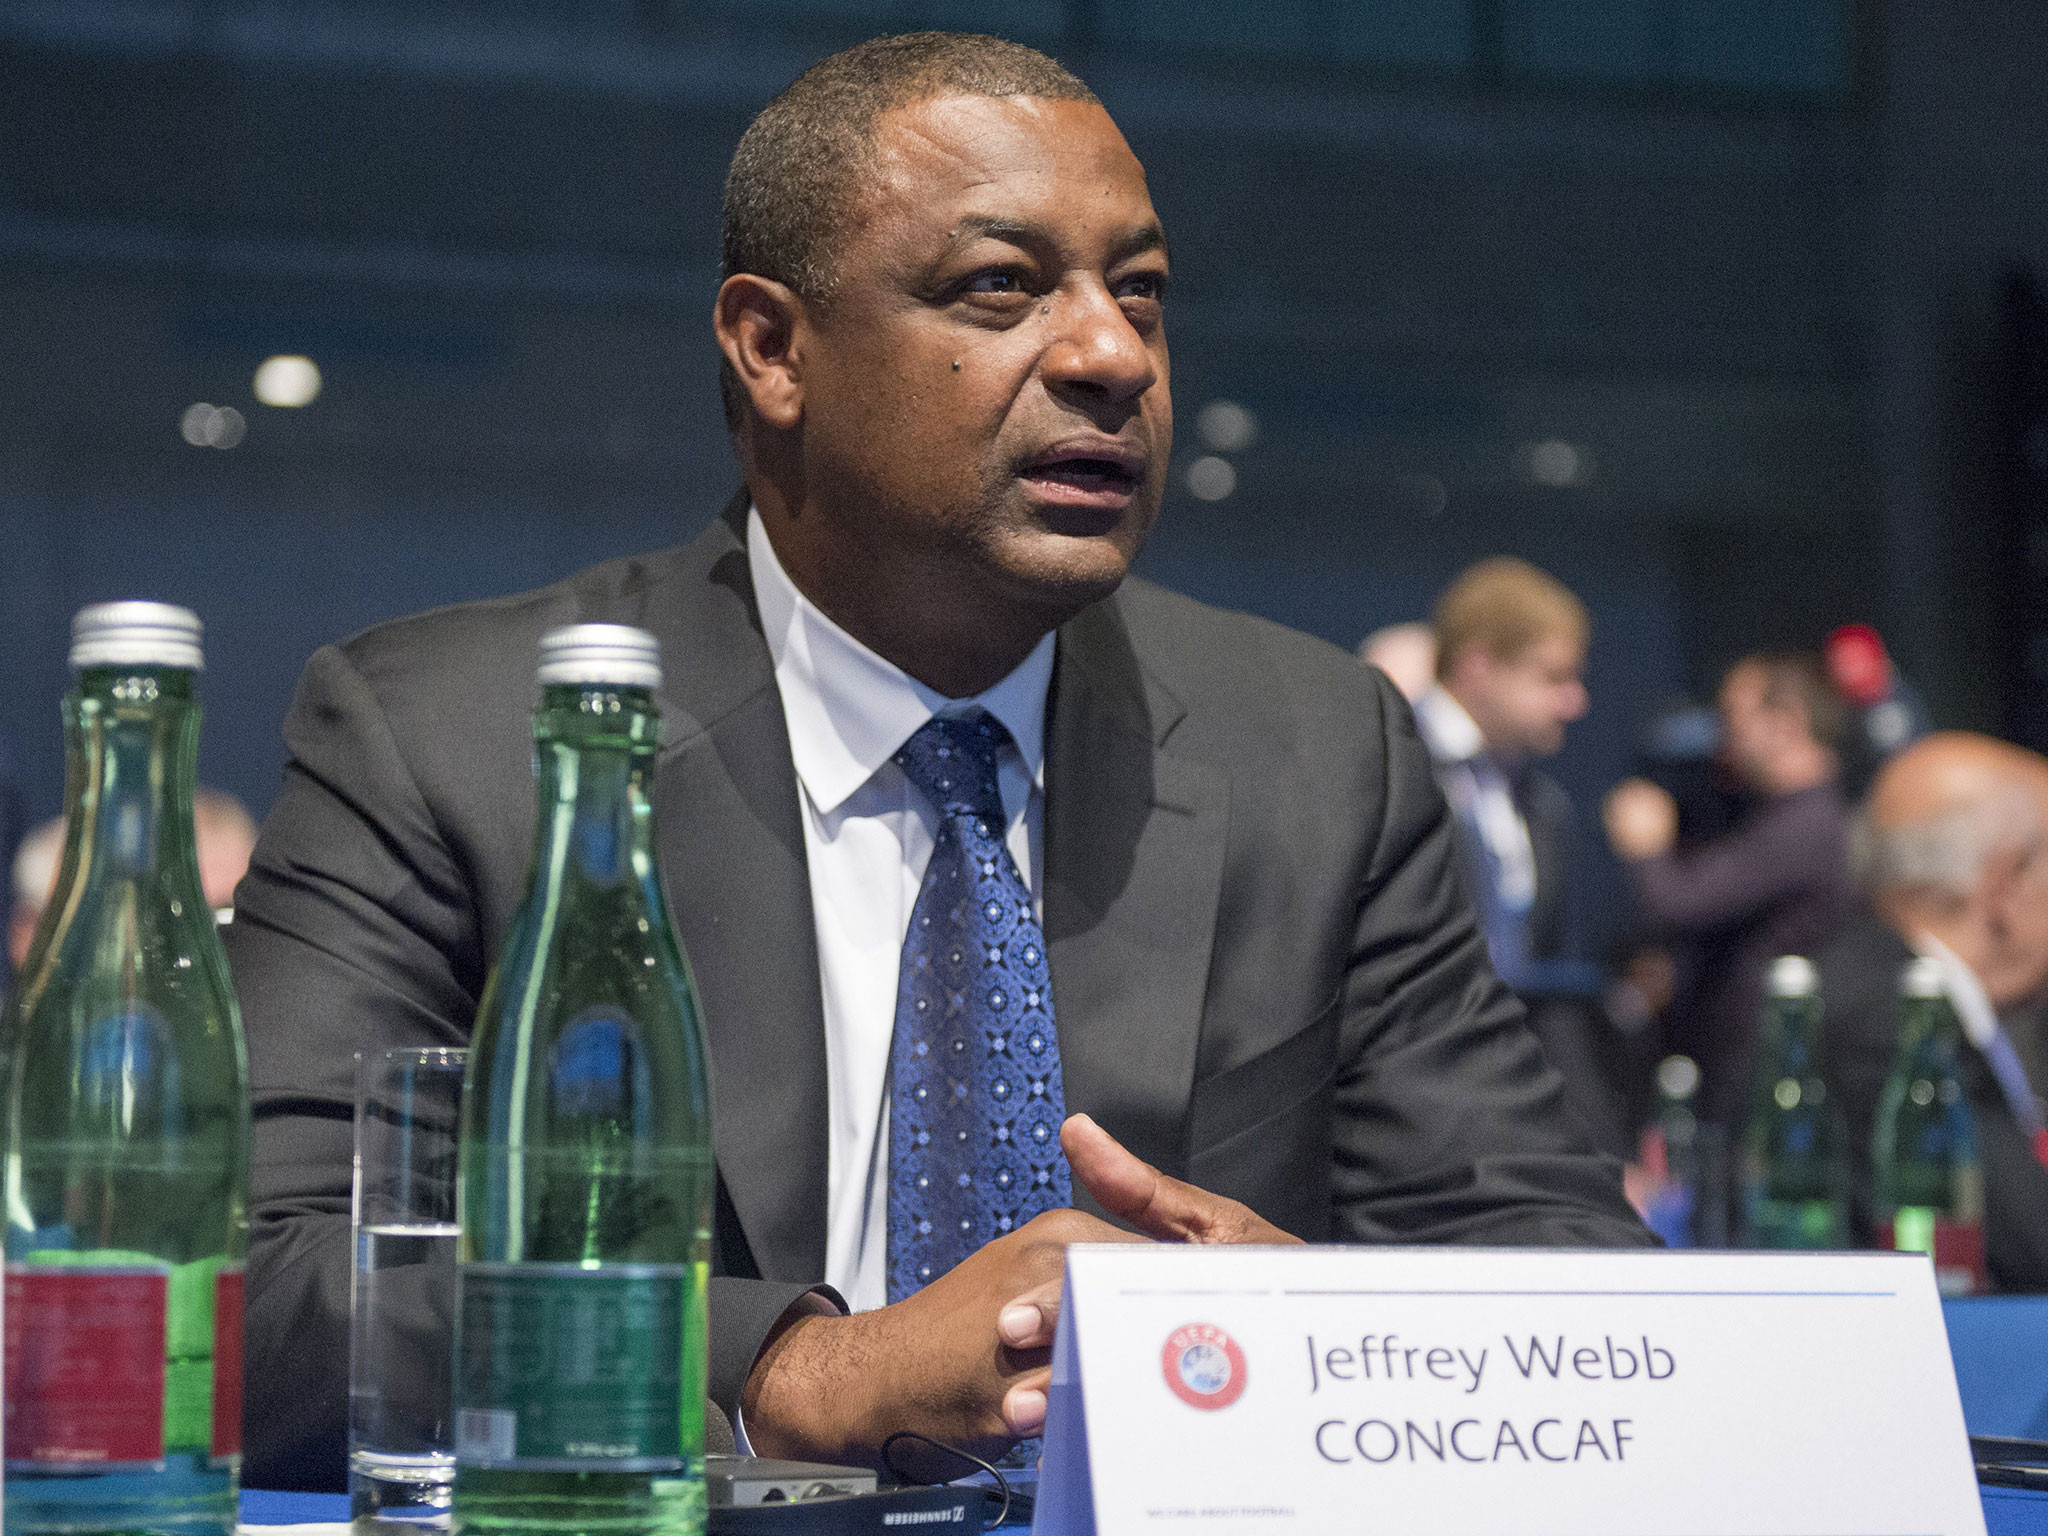 CONCACAF President Jeffrey Webb was among the top officials that Spanish broadcaster MediaPro admitted bribing for media and marketing rights ©Getty Images